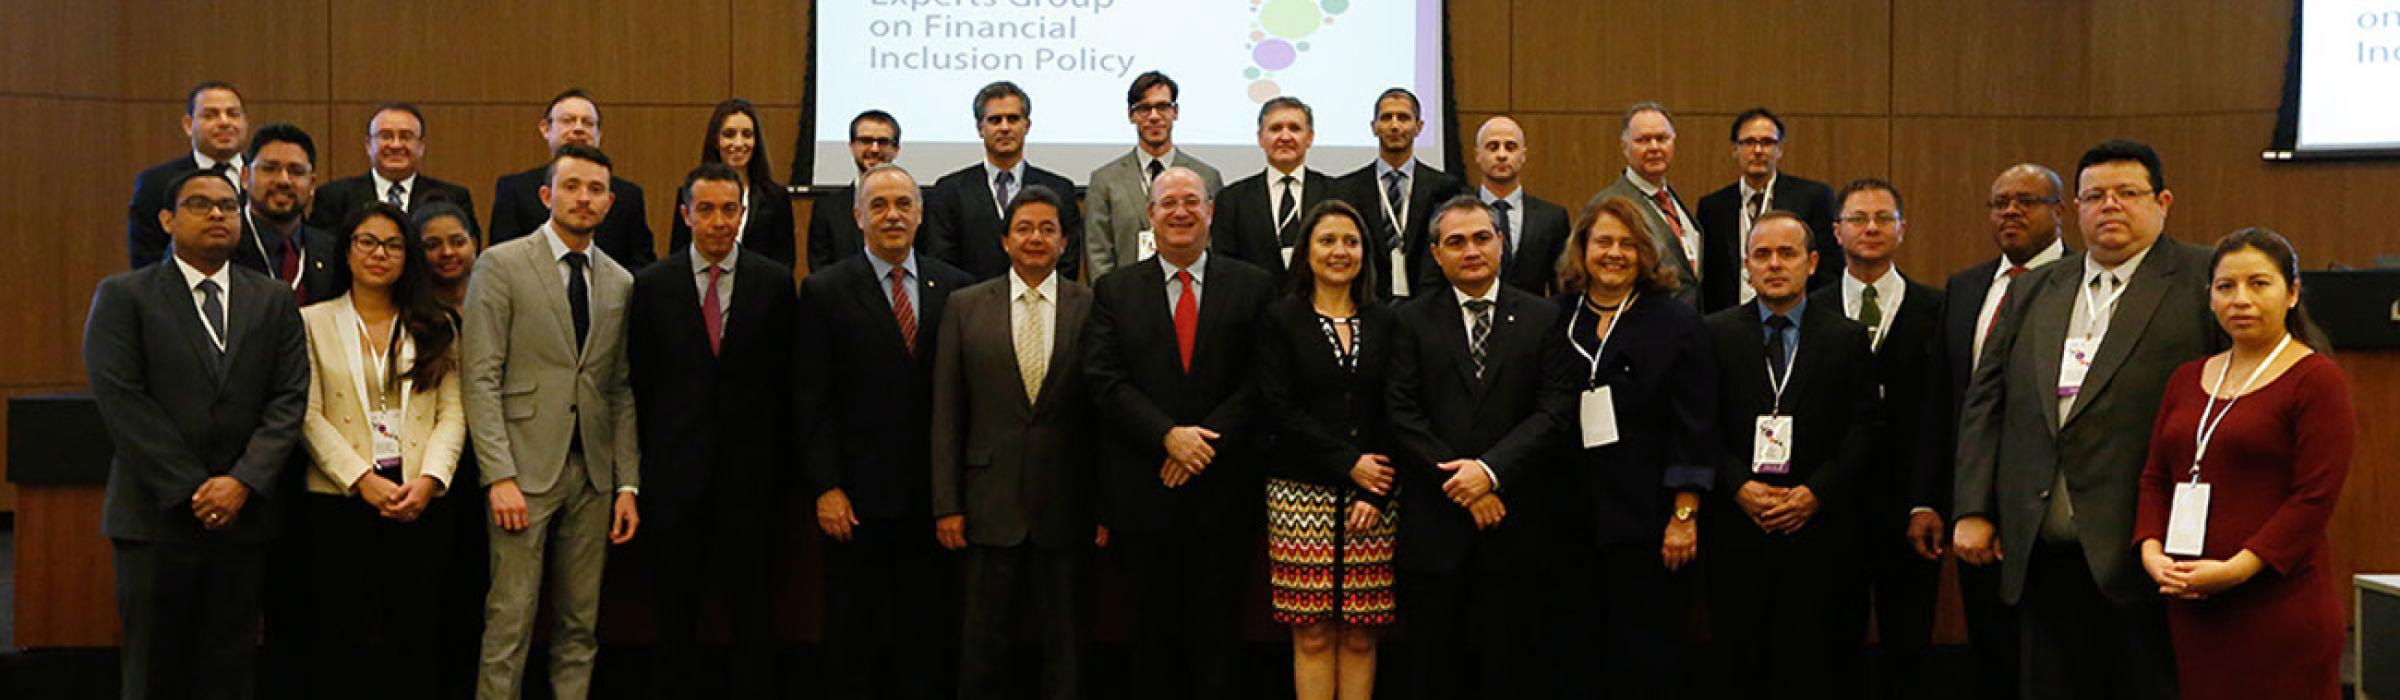 Participants of the fist Experts Group on Financial Inclusion in Brazil, May 2017